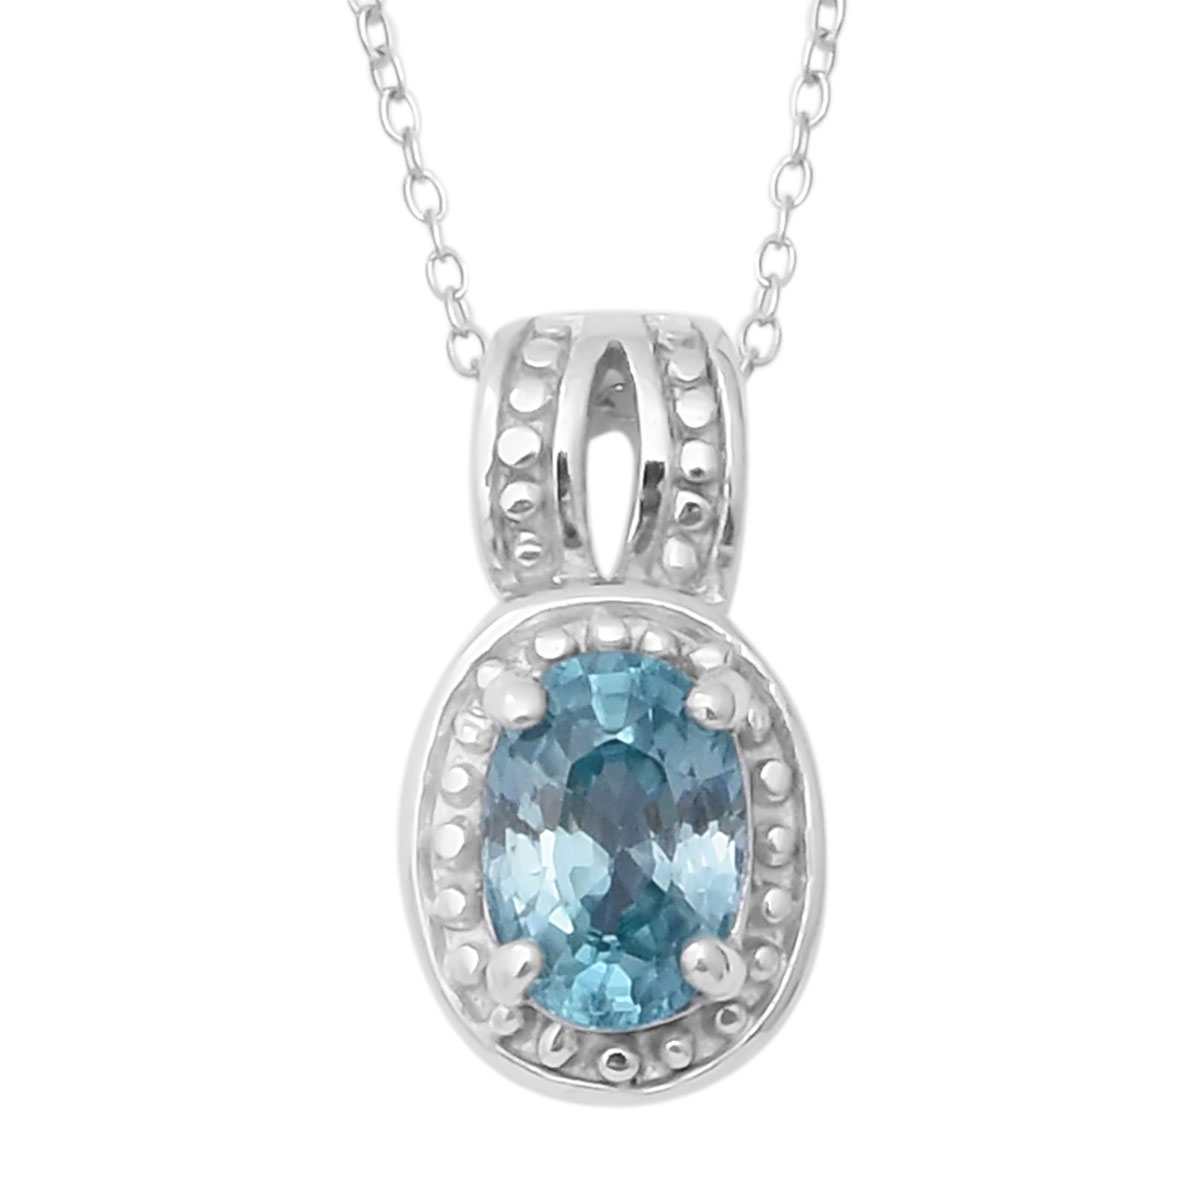 Cambodian Blue Zircon Ring (Size 10) and Pendant Necklace (18 in) in Platinum Over Sterling Silver 2.82 ctw